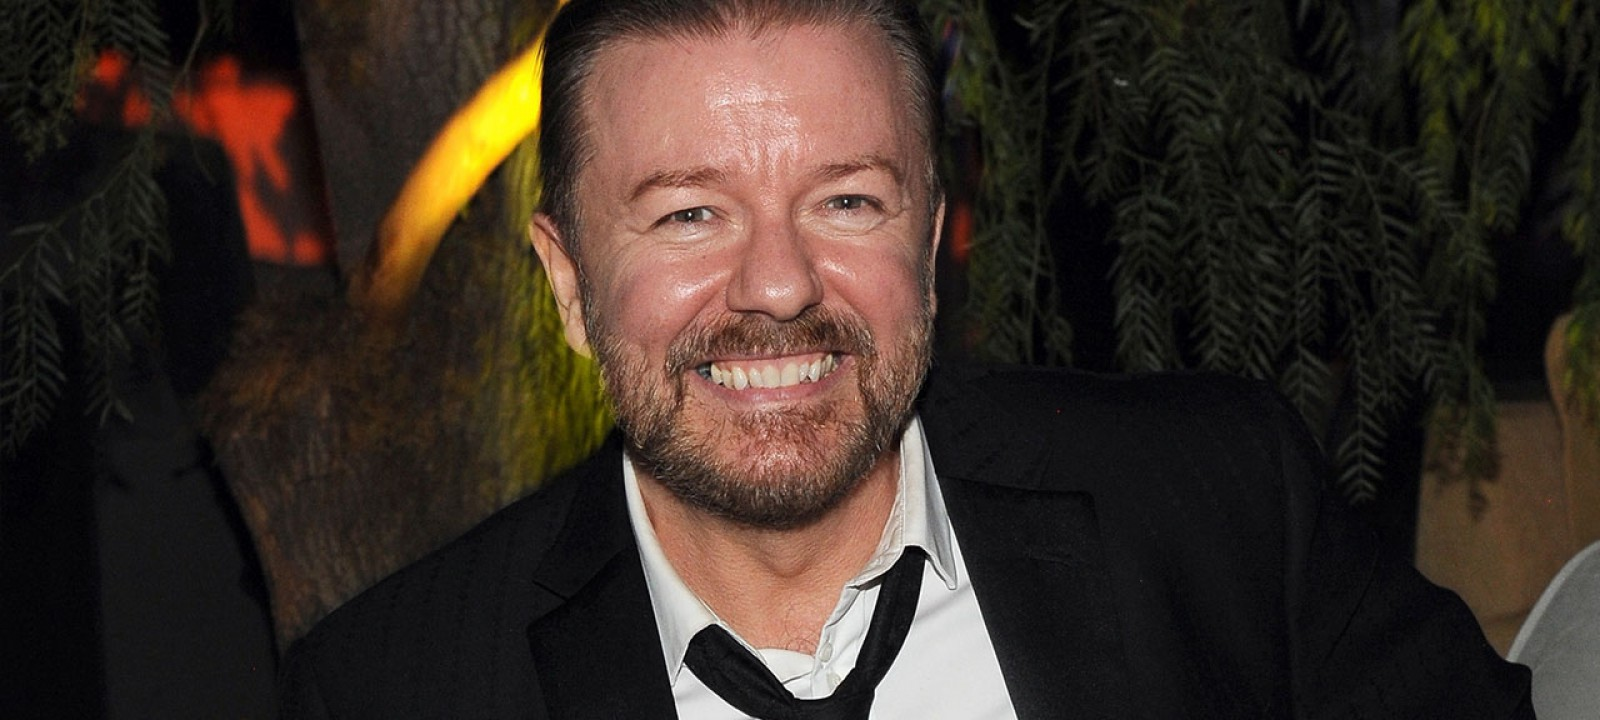 1280x720_rickygervais_quotes